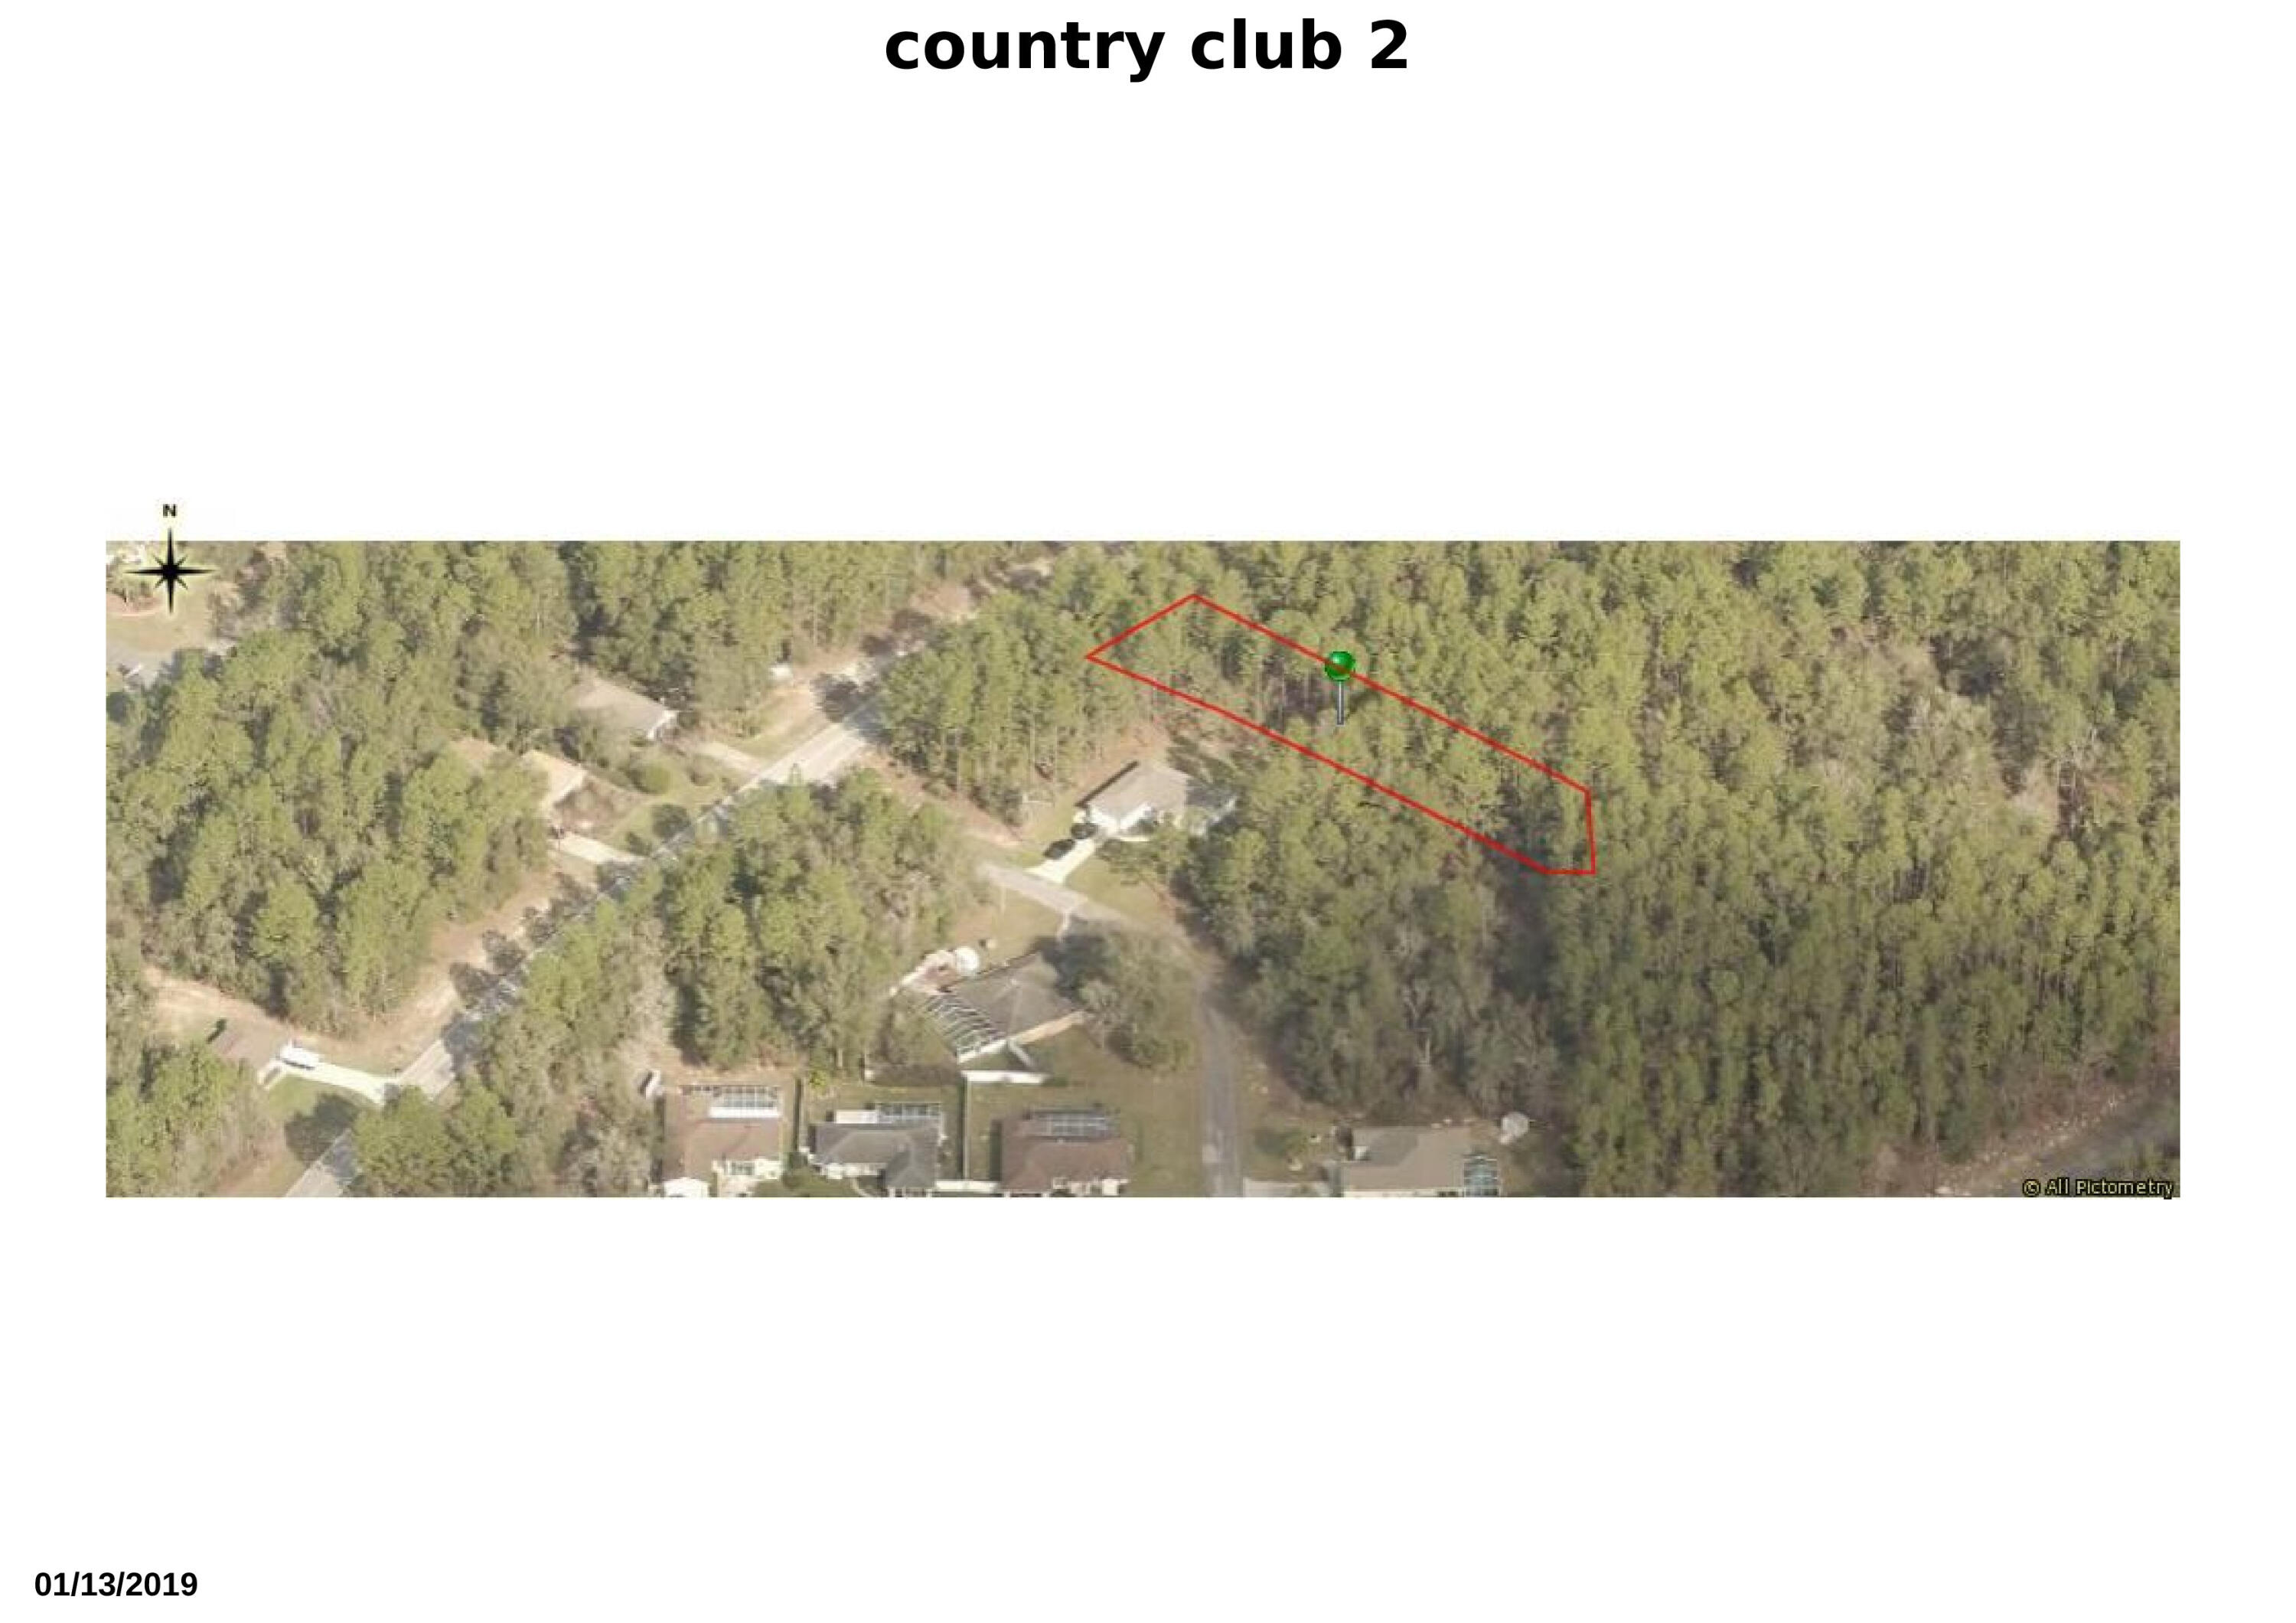 10053 country club 2